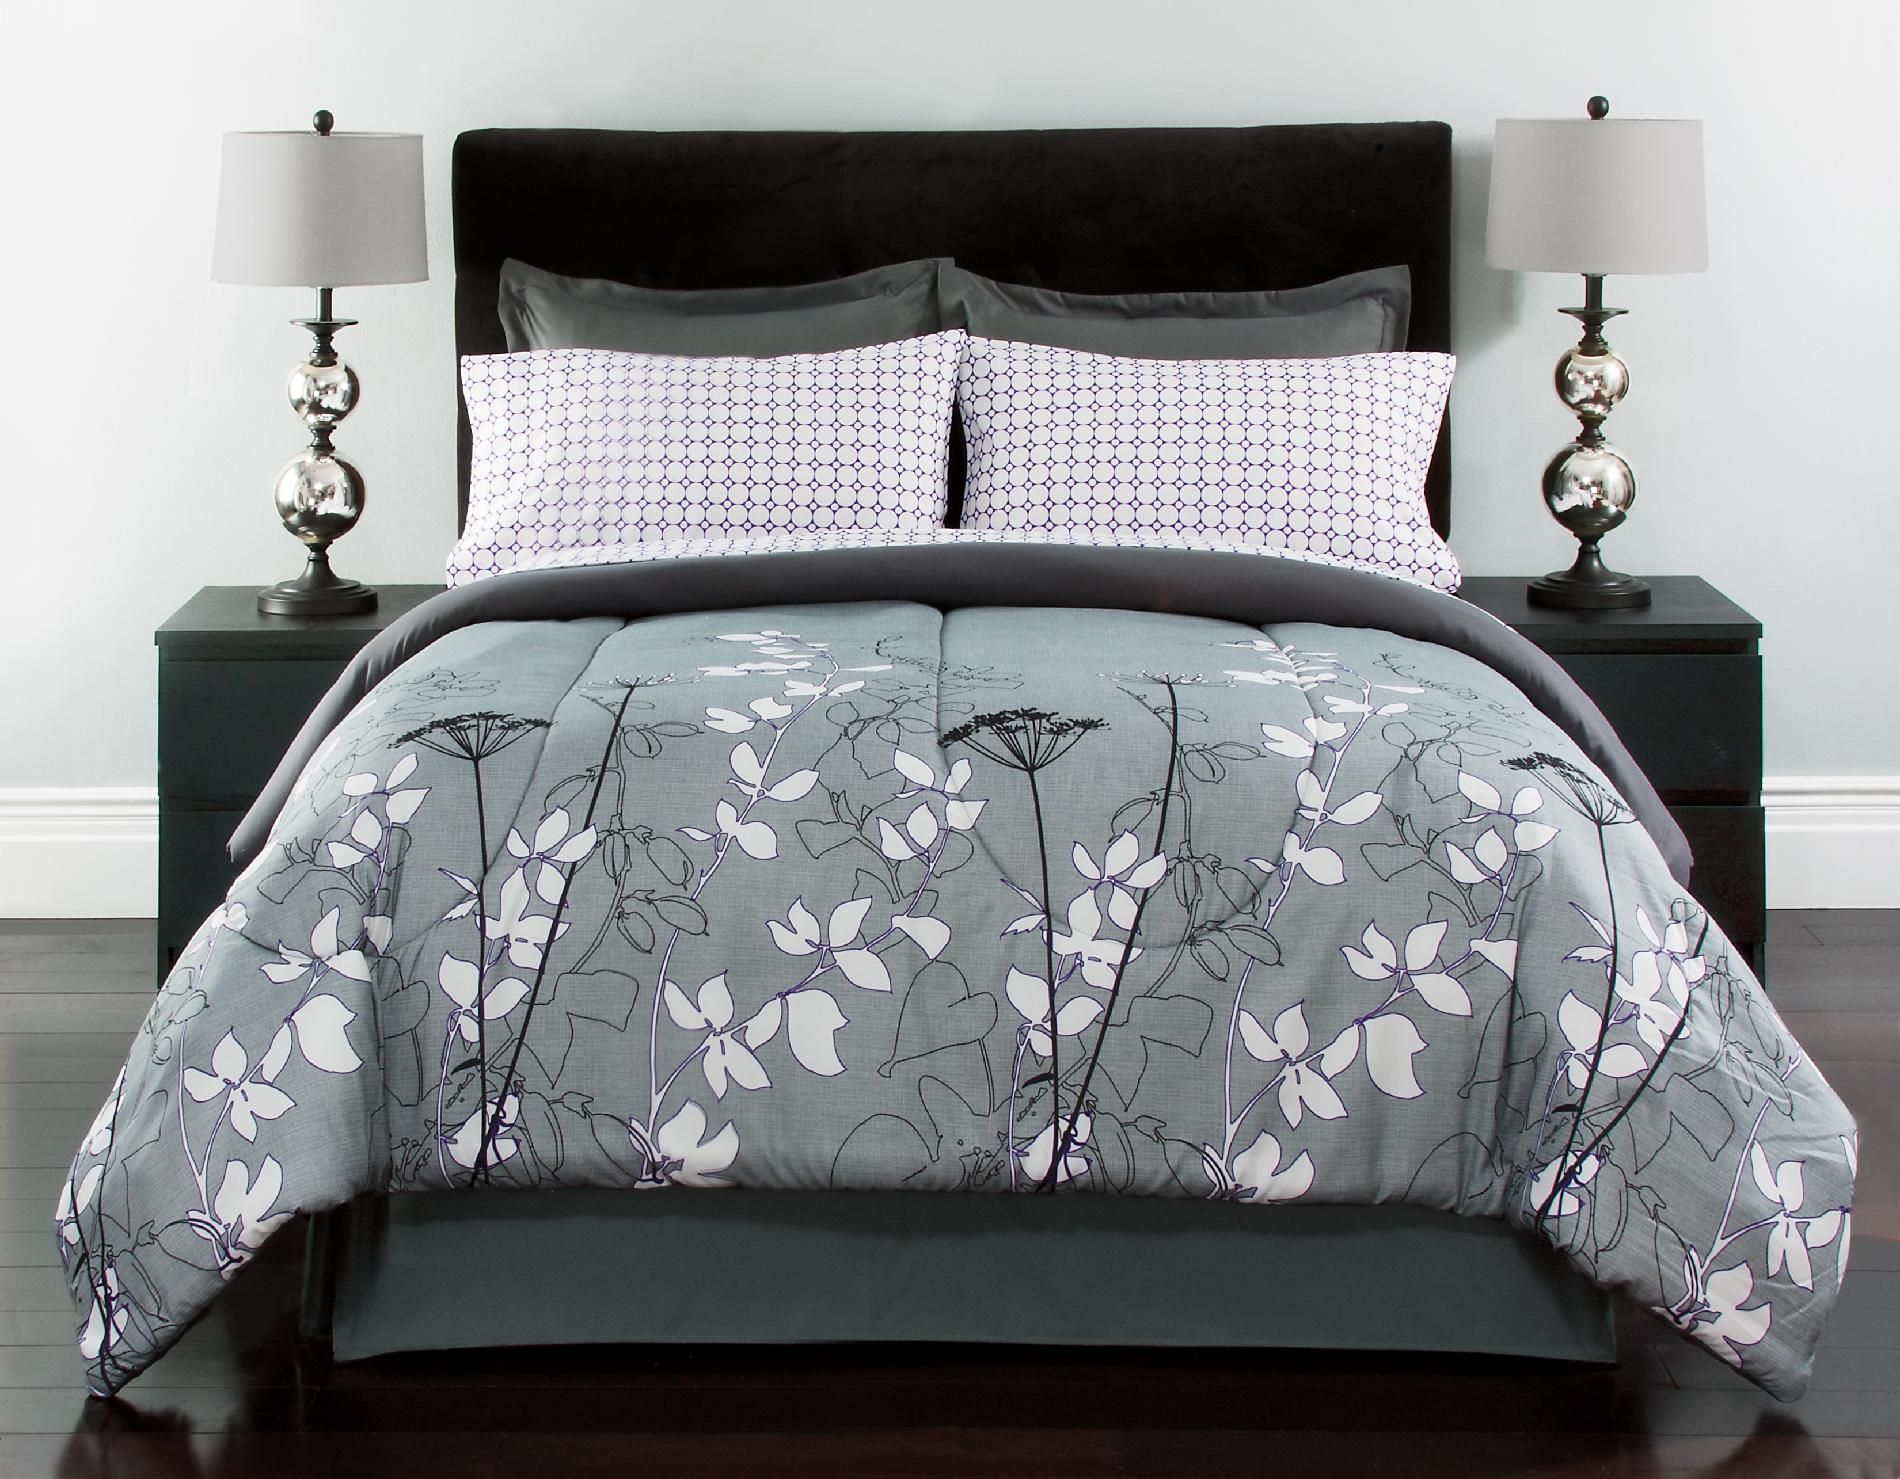 Bedding jardin collection bedding collections bed amp bath macy s -  Complete Bed Set Shelby Bed Bath Decorative Bedding Comforters